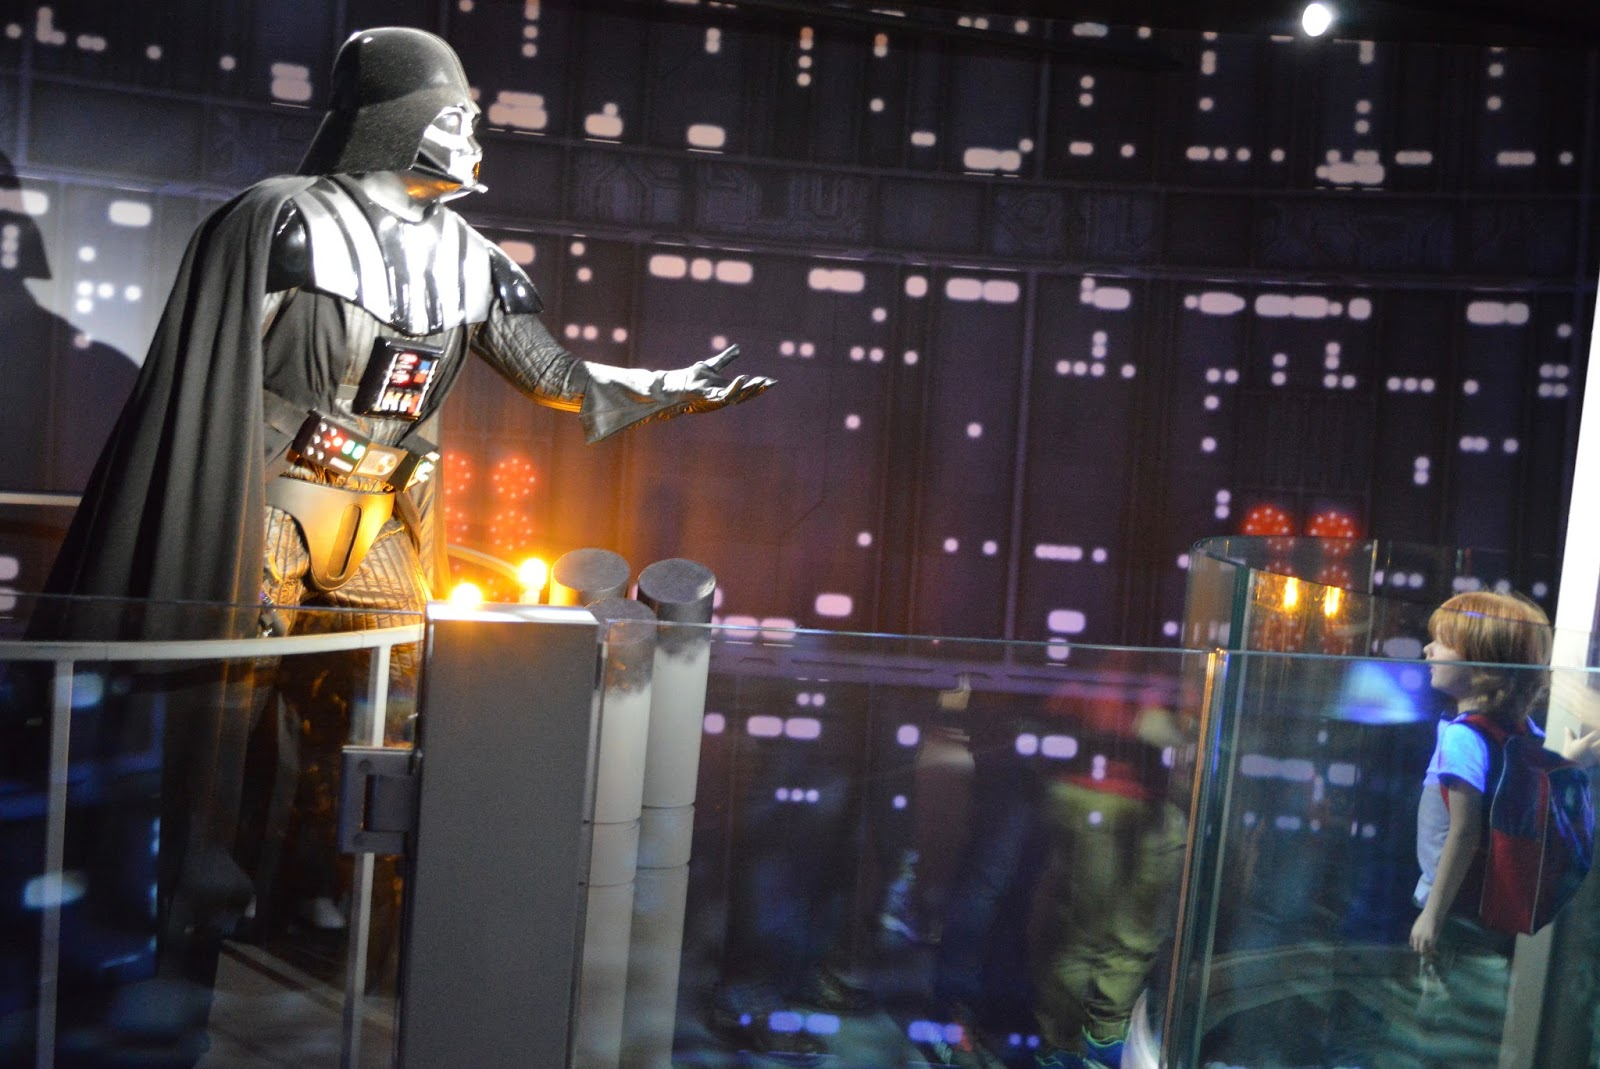 5 ways to feed your family's Star Wars obsession - Darth Vader at Madame Tussayds London